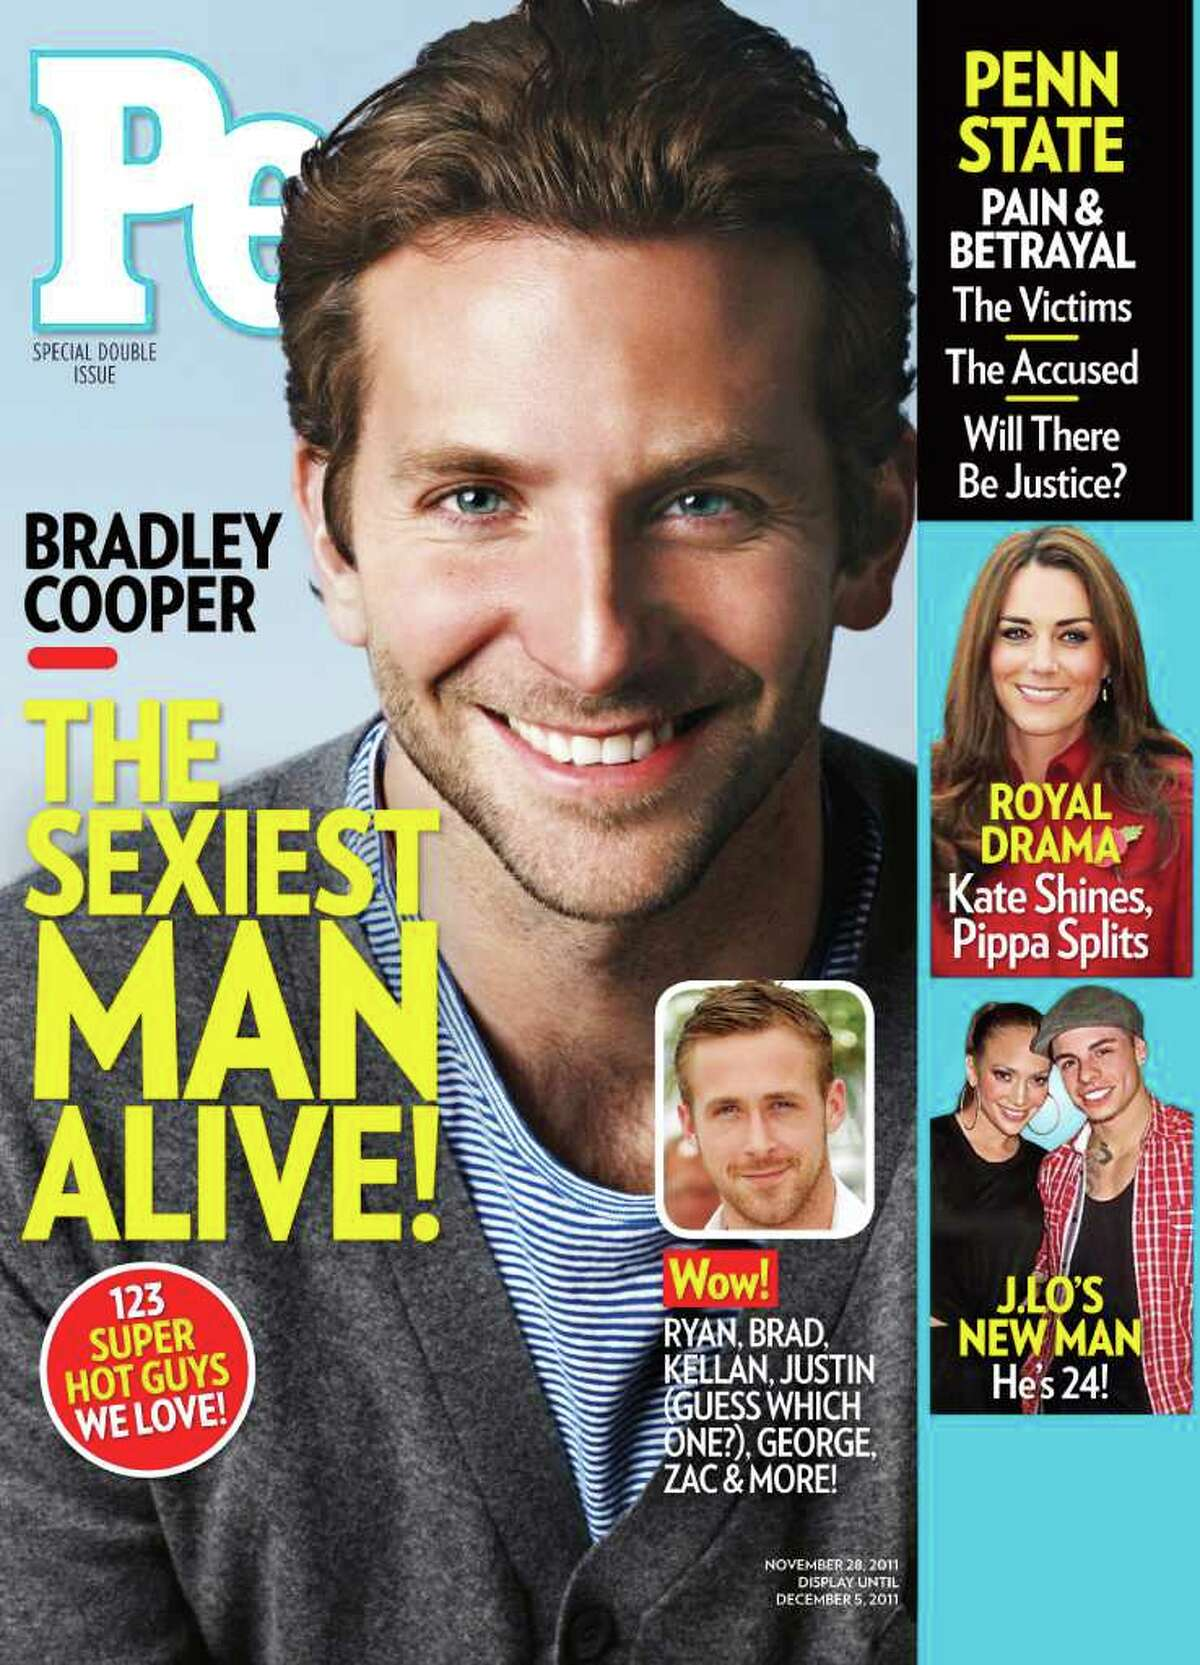 ASSOCIATED PRESS HED: Despite rumors about his love life, Bradley Cooper says he is single.